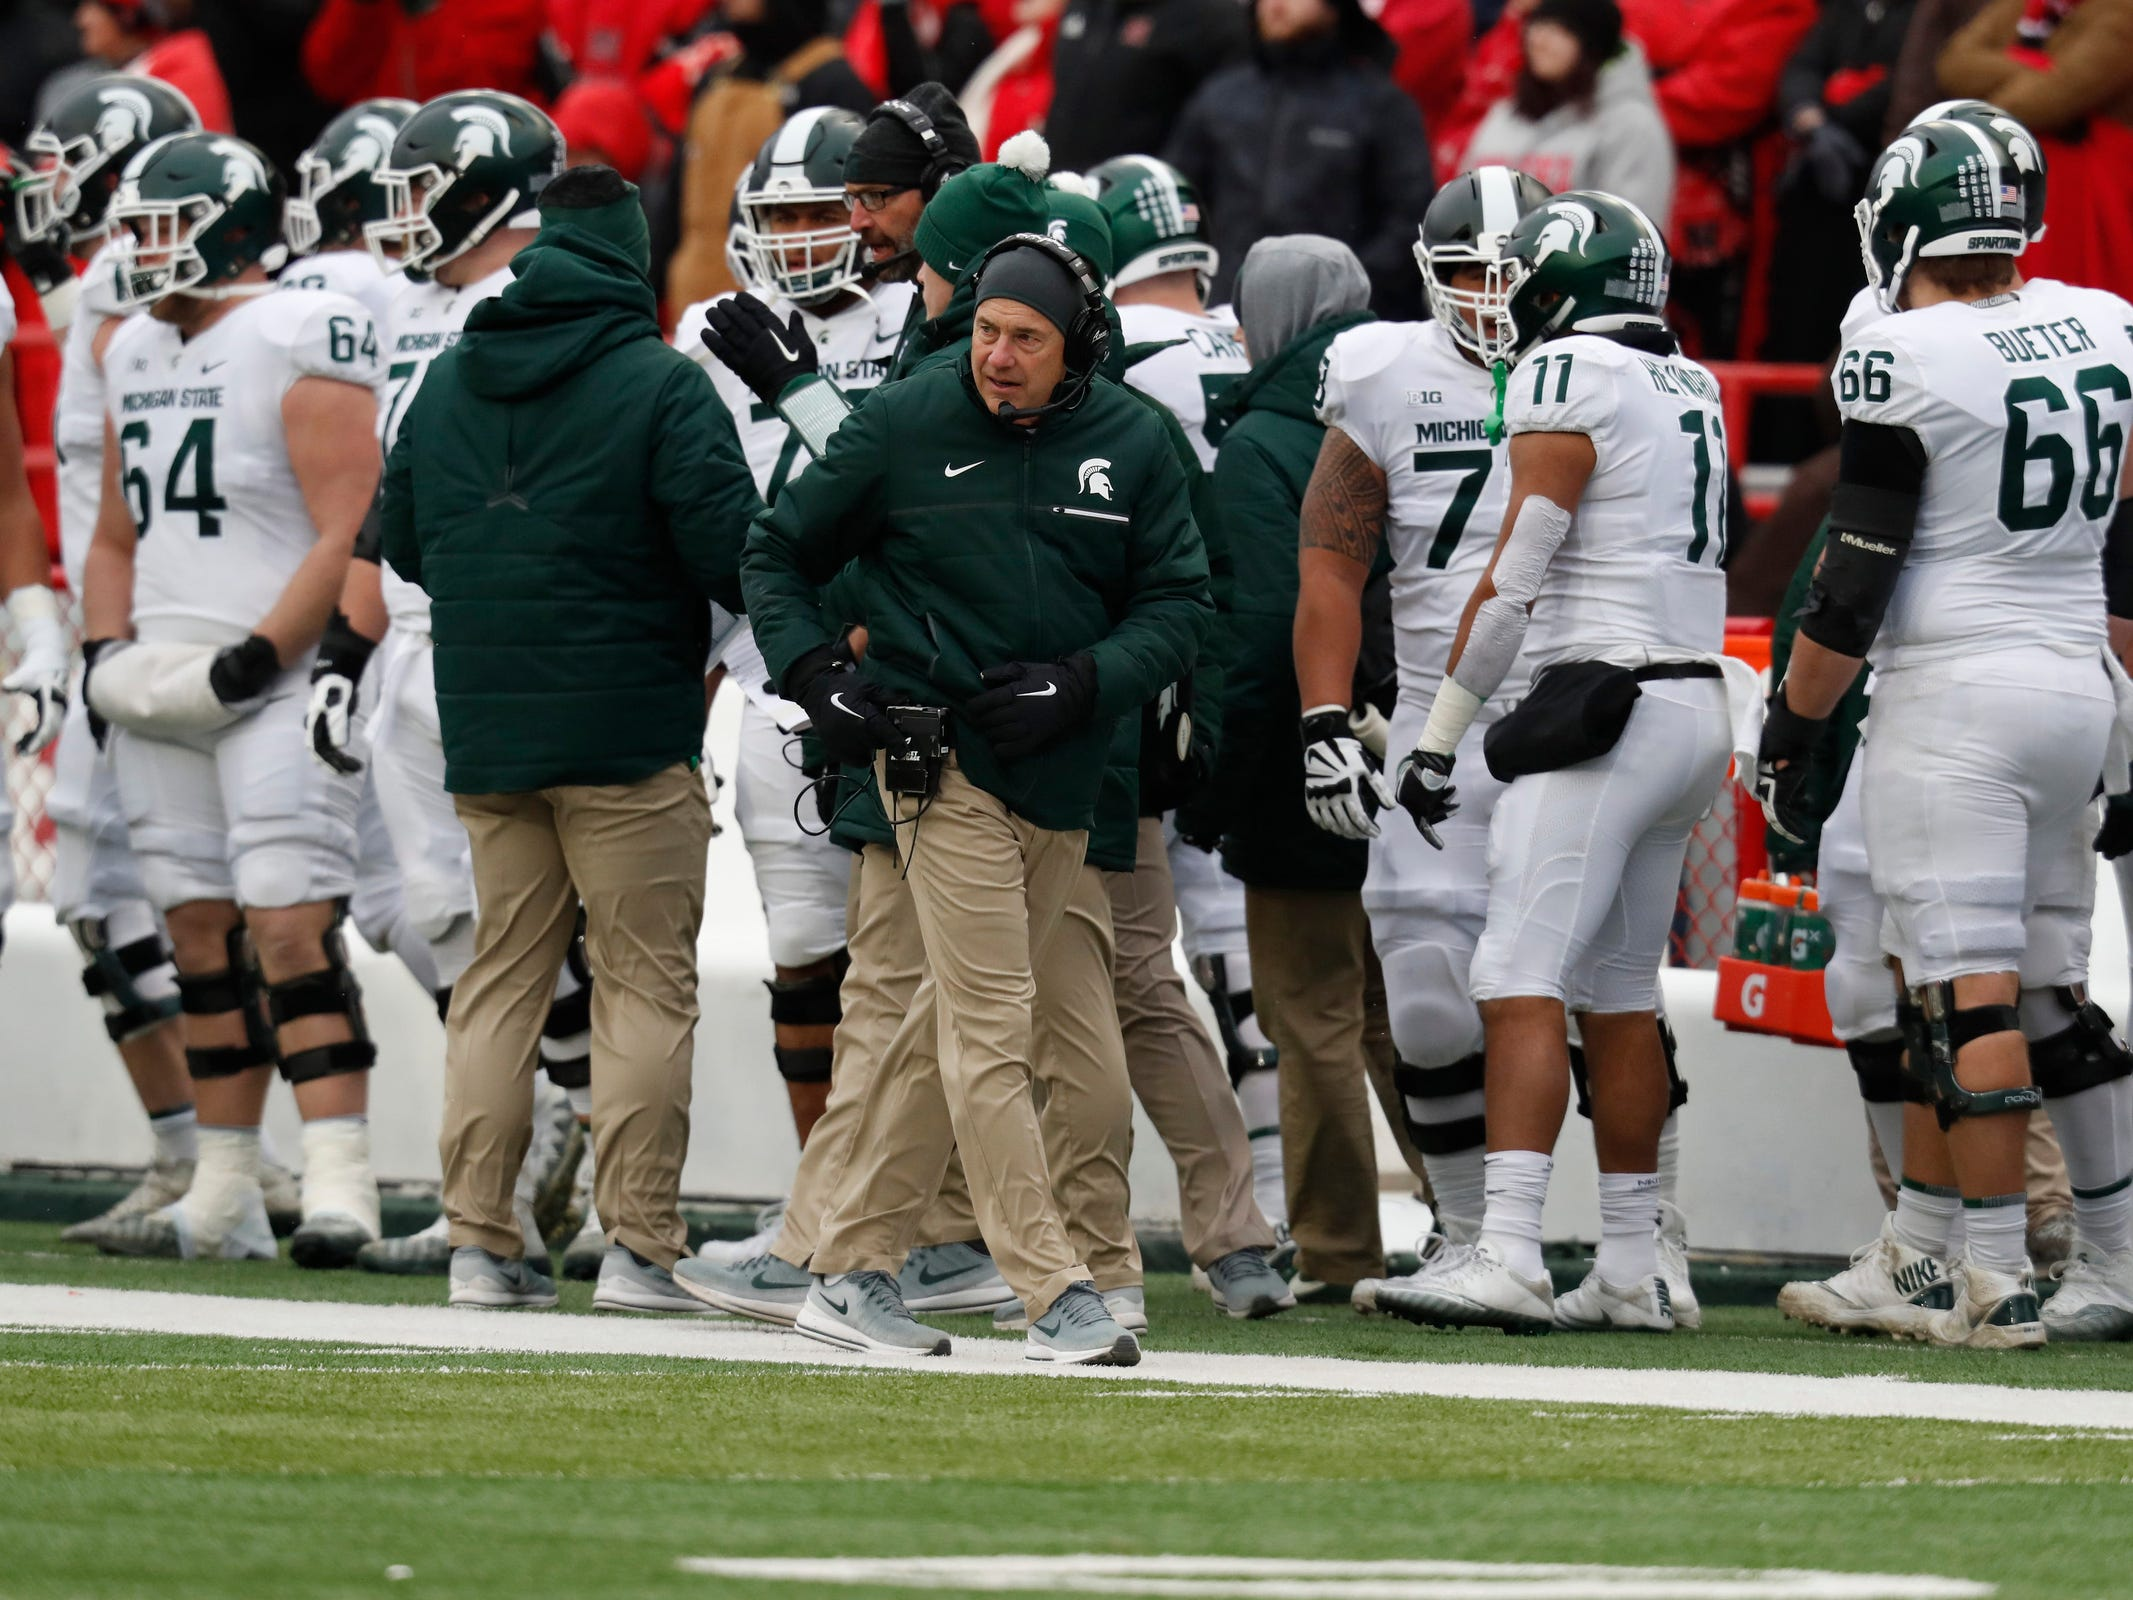 Michigan State coach Mark Dantonio watches from the sideline during the game against Nebraska in the first half on Saturday, Nov. 17, 2018, in Lincoln, Neb.